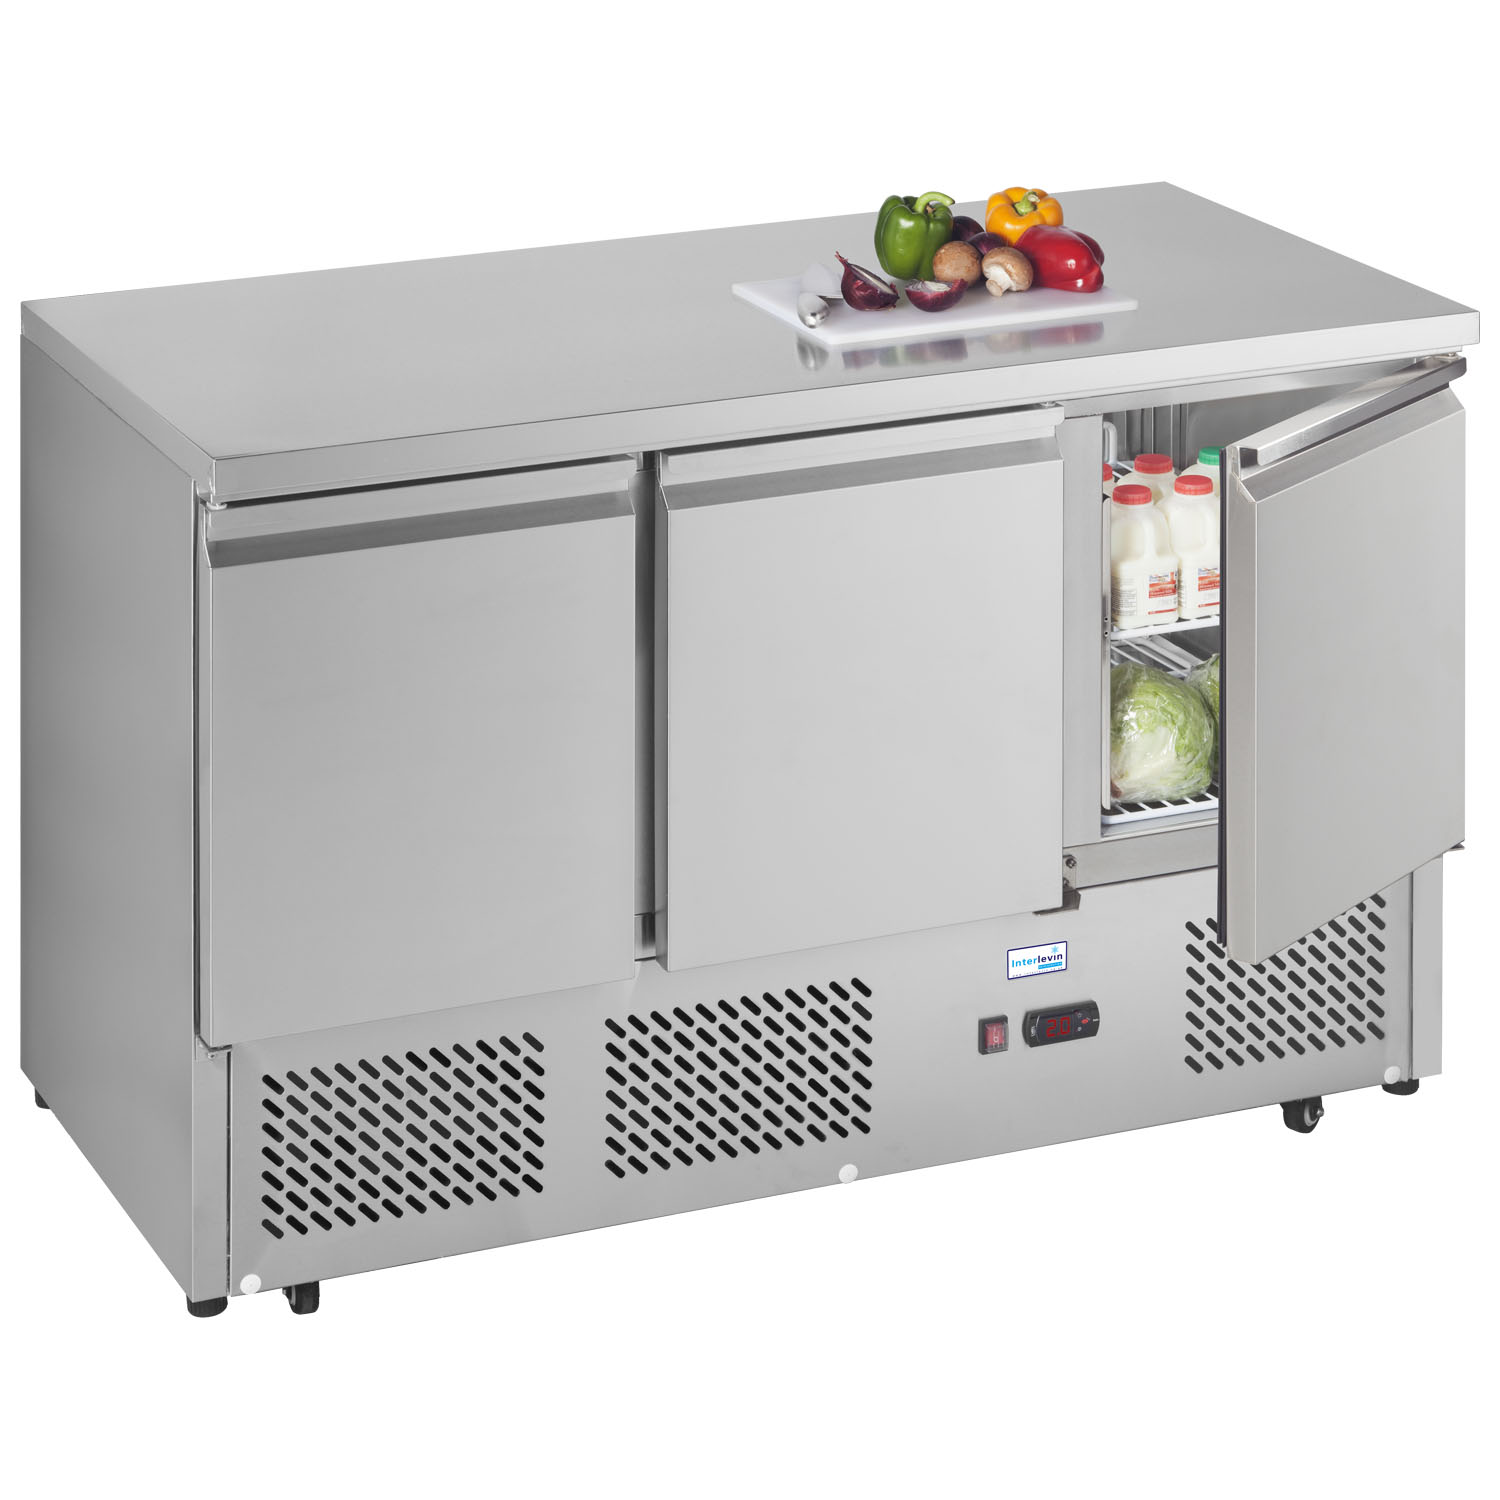 An image of Interlevin ESL1365 Refrigerated Prep Counter